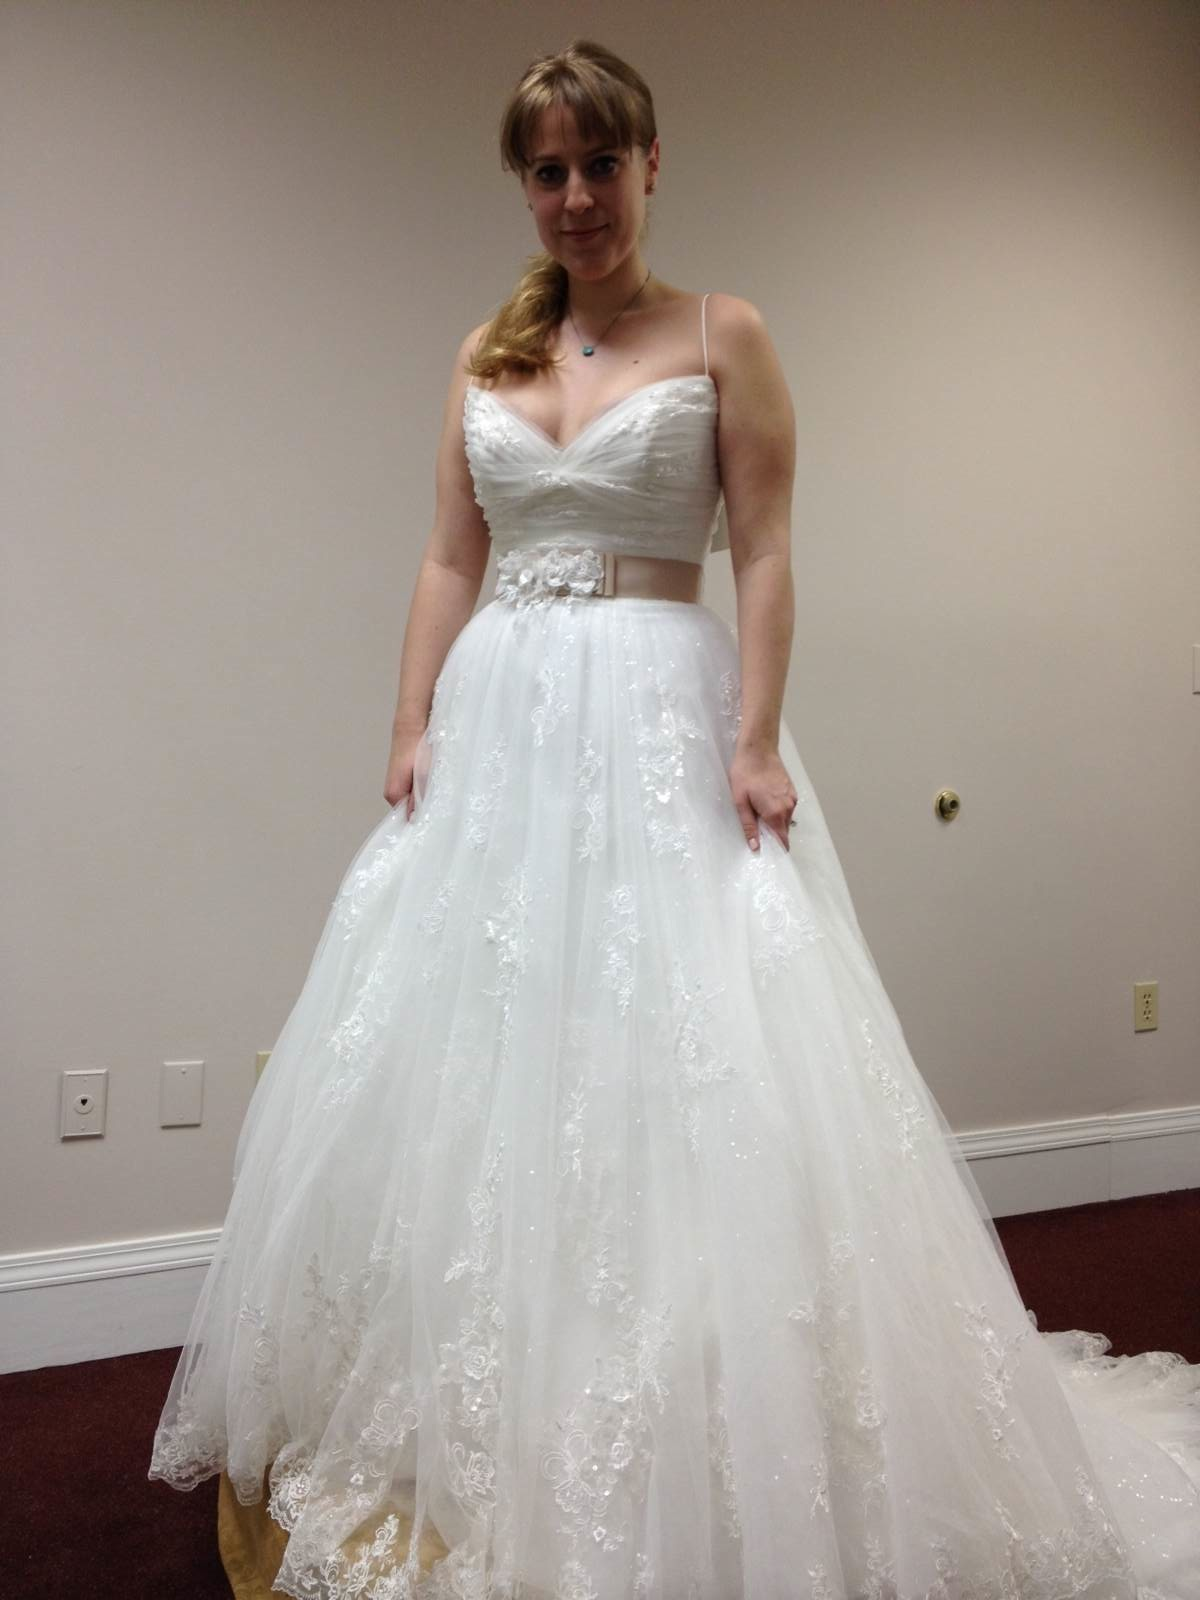 Images of Revealing Wedding Dresses - Best Fashion Trends ...